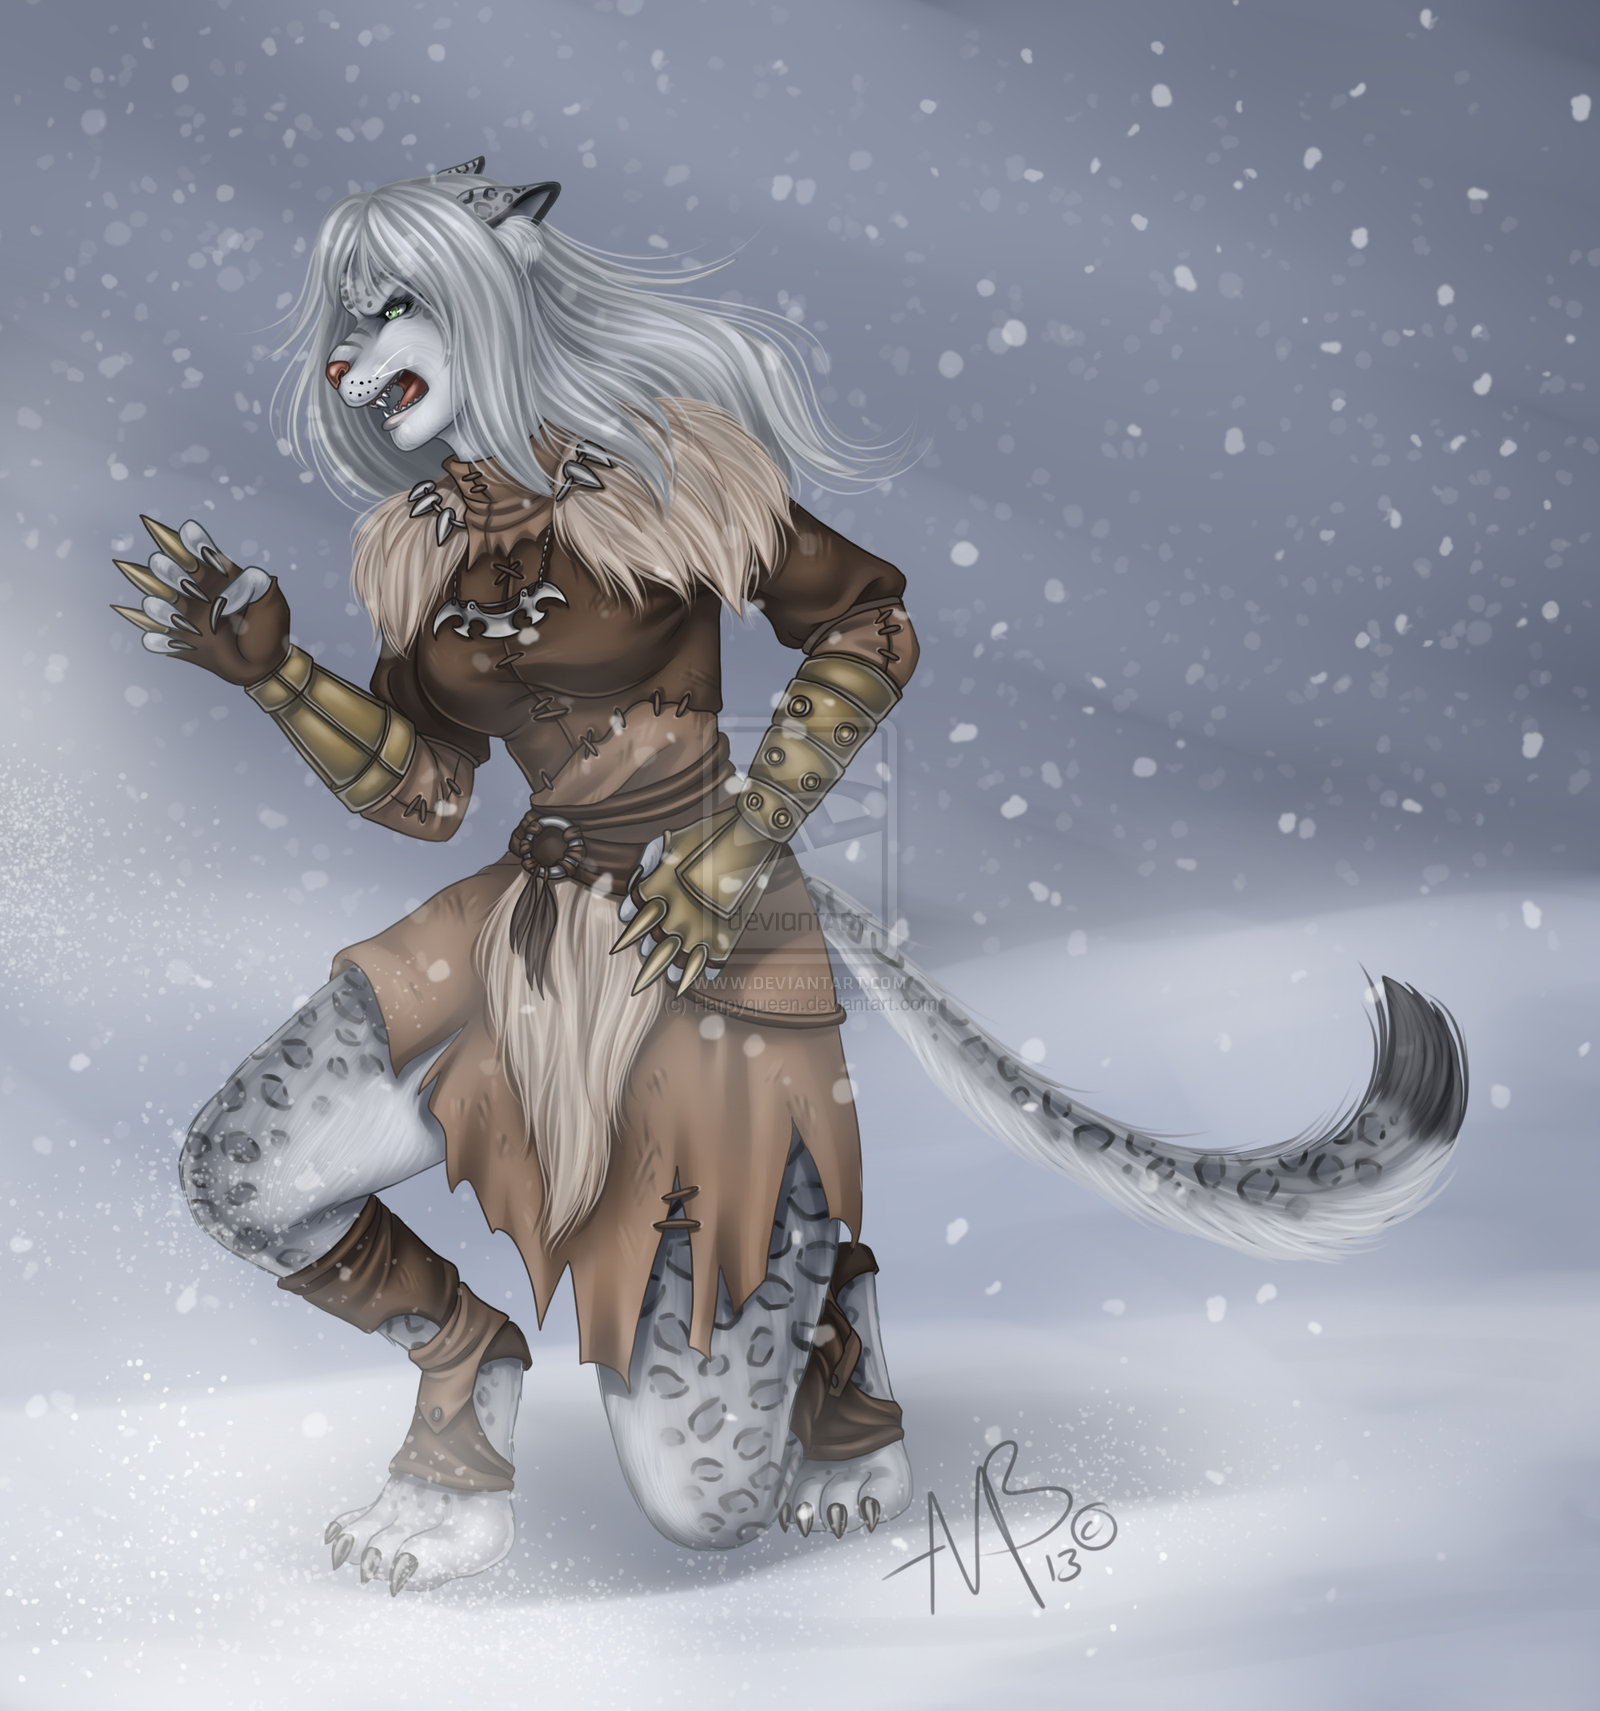 sleet_commission_by_harpyqueen-d5zleb5.jpg